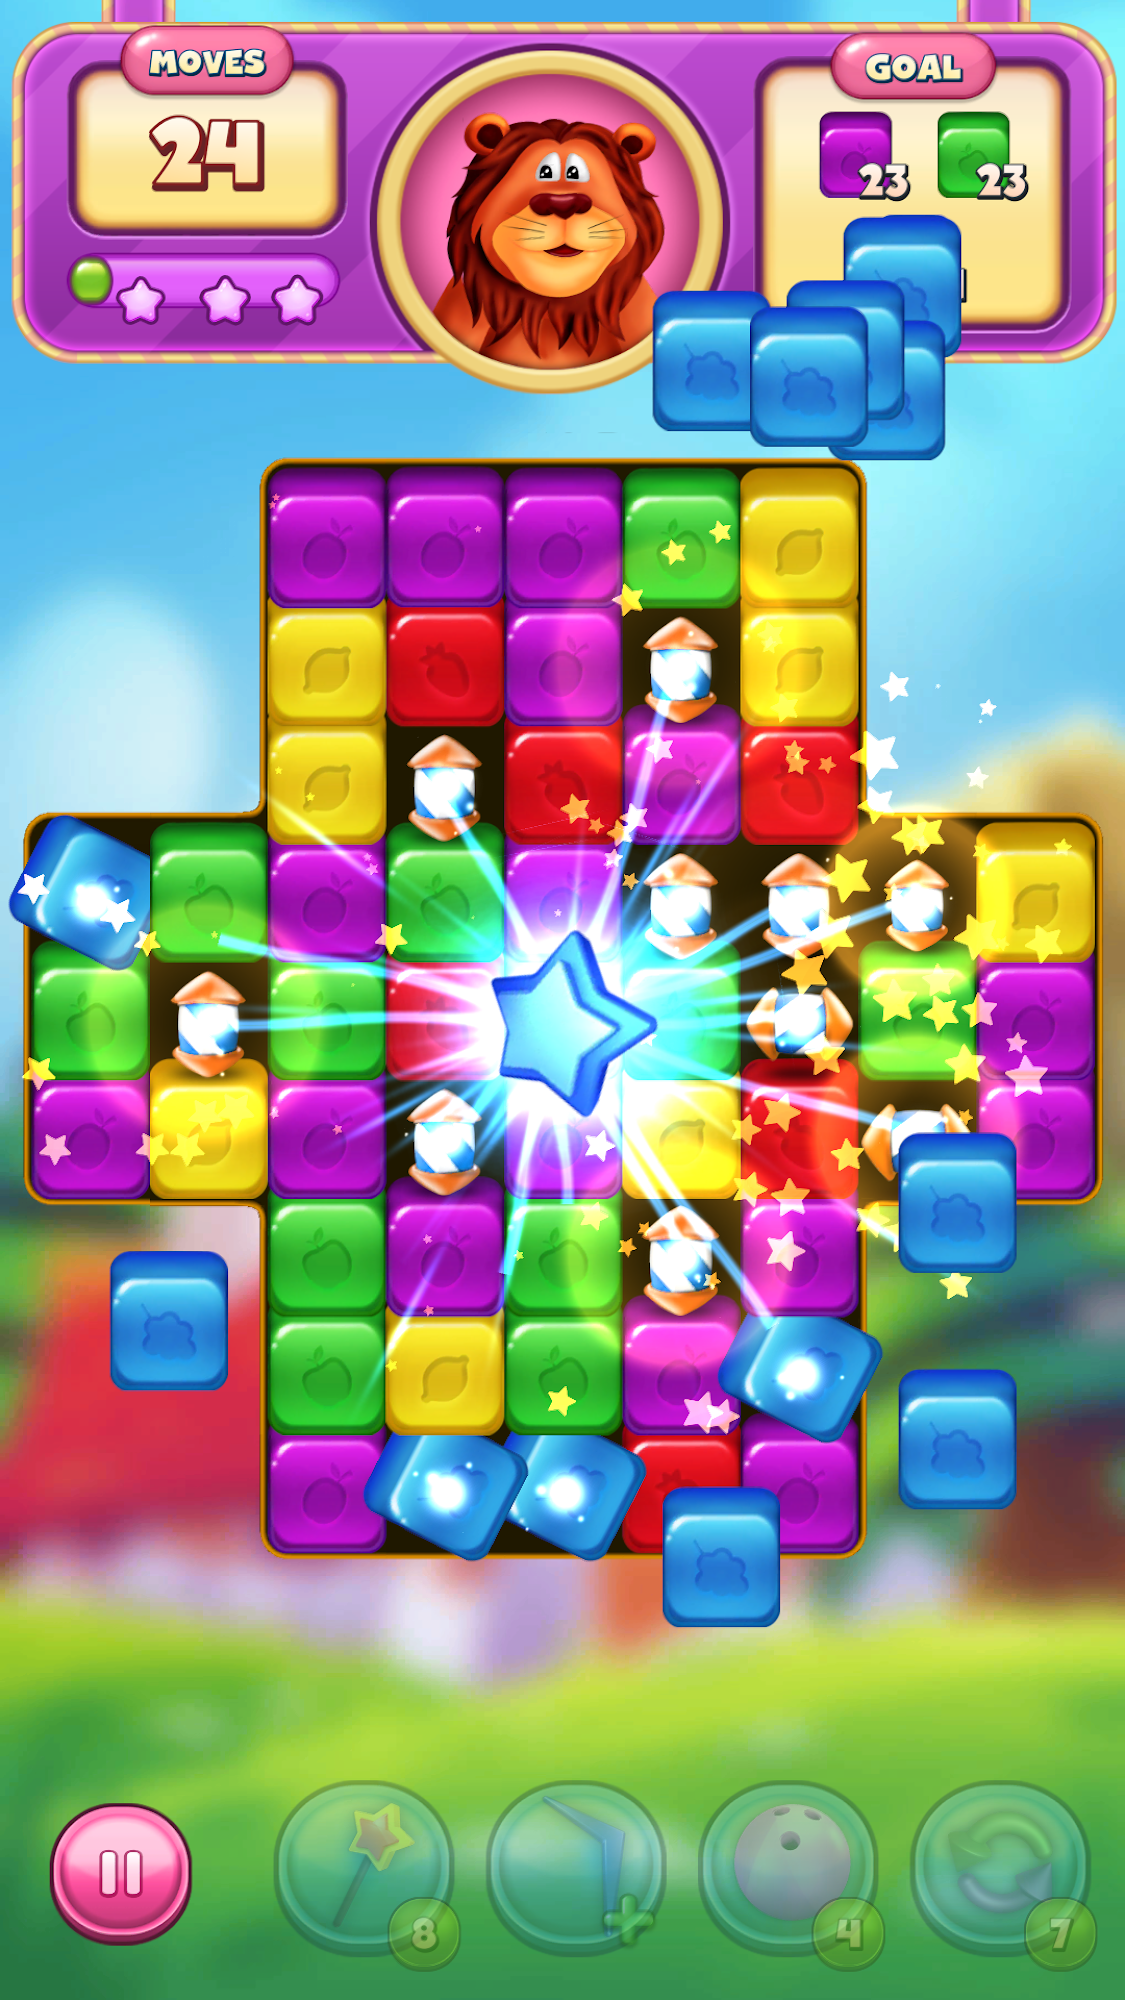 Cartoon Crush: Blast 3 Matching Games Toon Puzzle screenshot 3